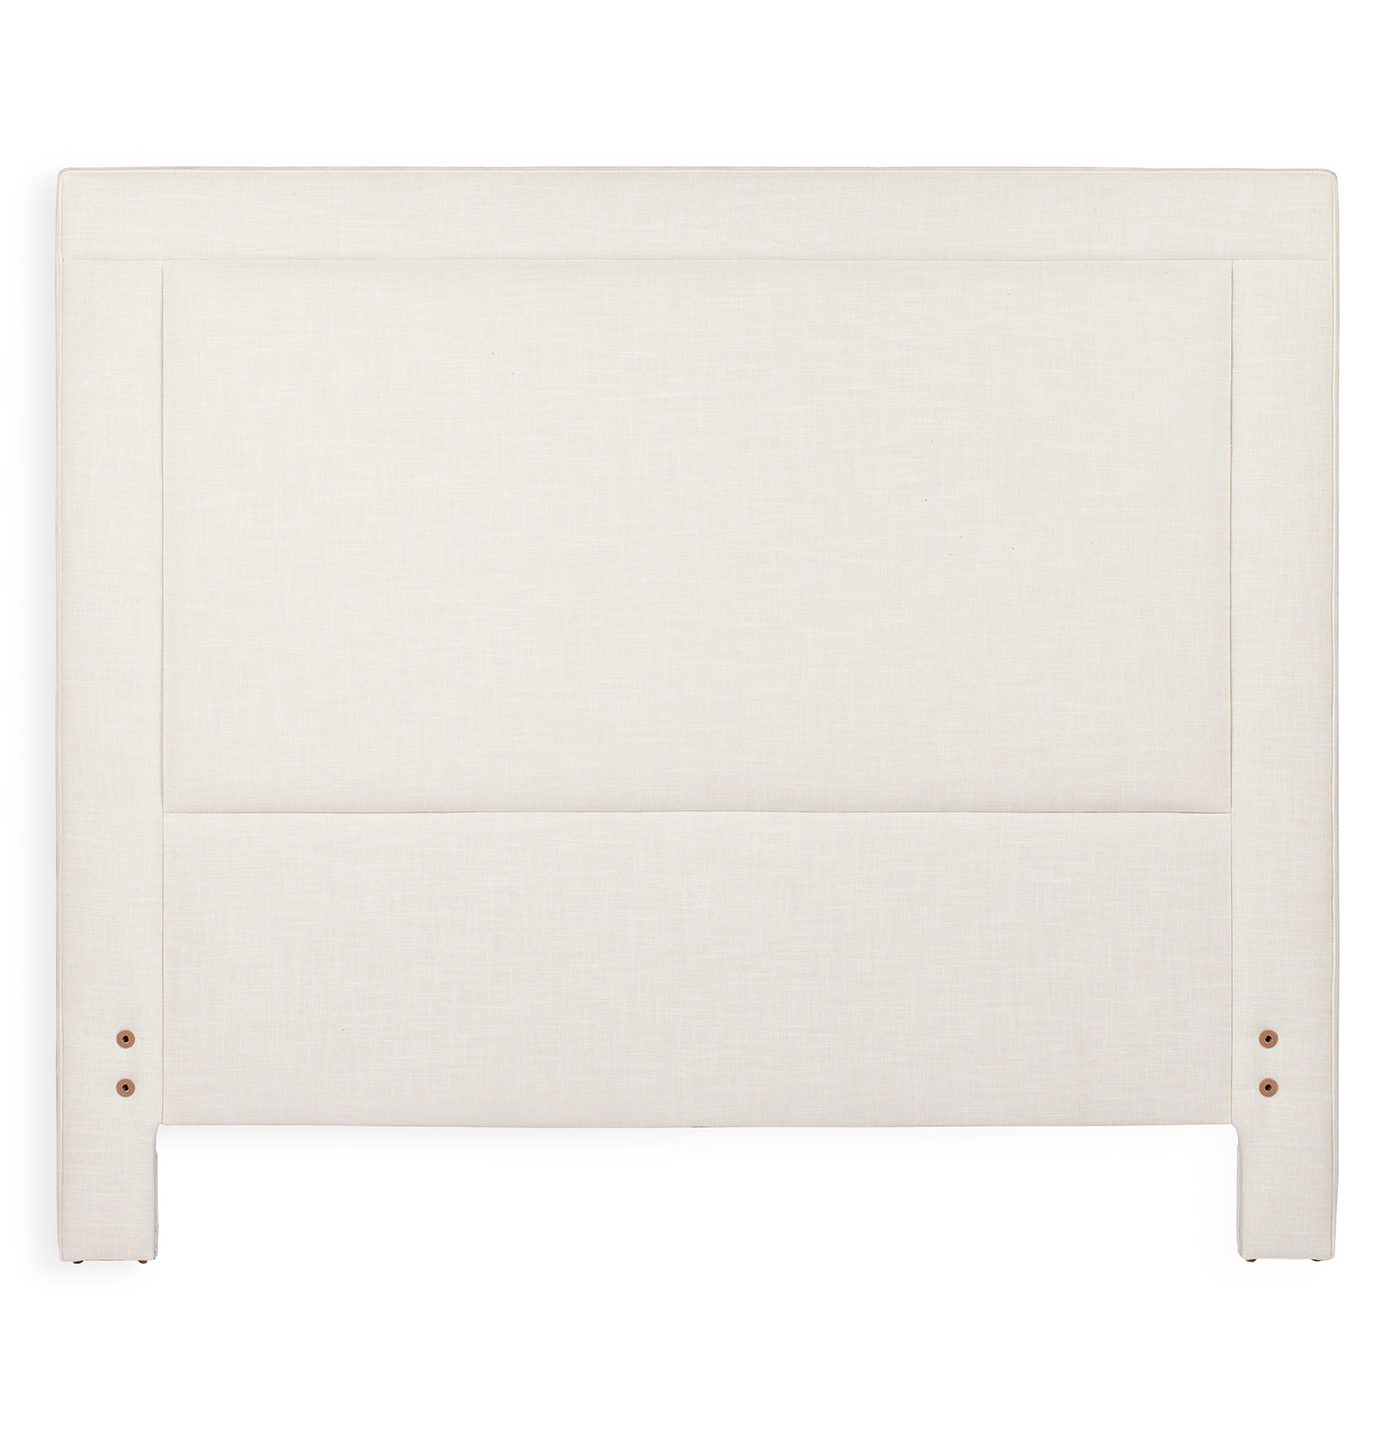 Sloan Modern Classic Square Banded Ivory Linen Headboard- Queen